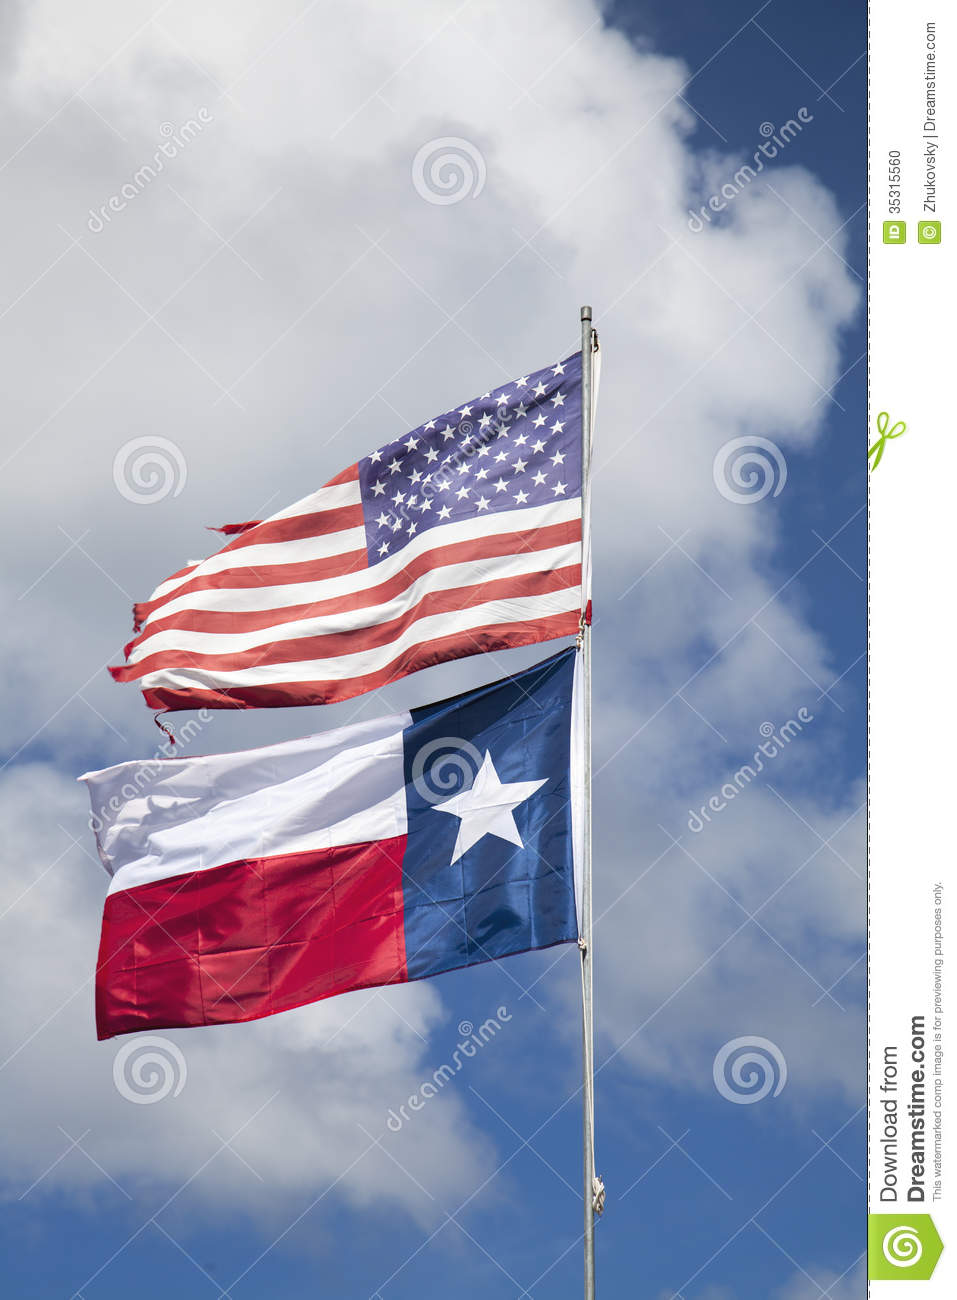 American flag and flag of Texas